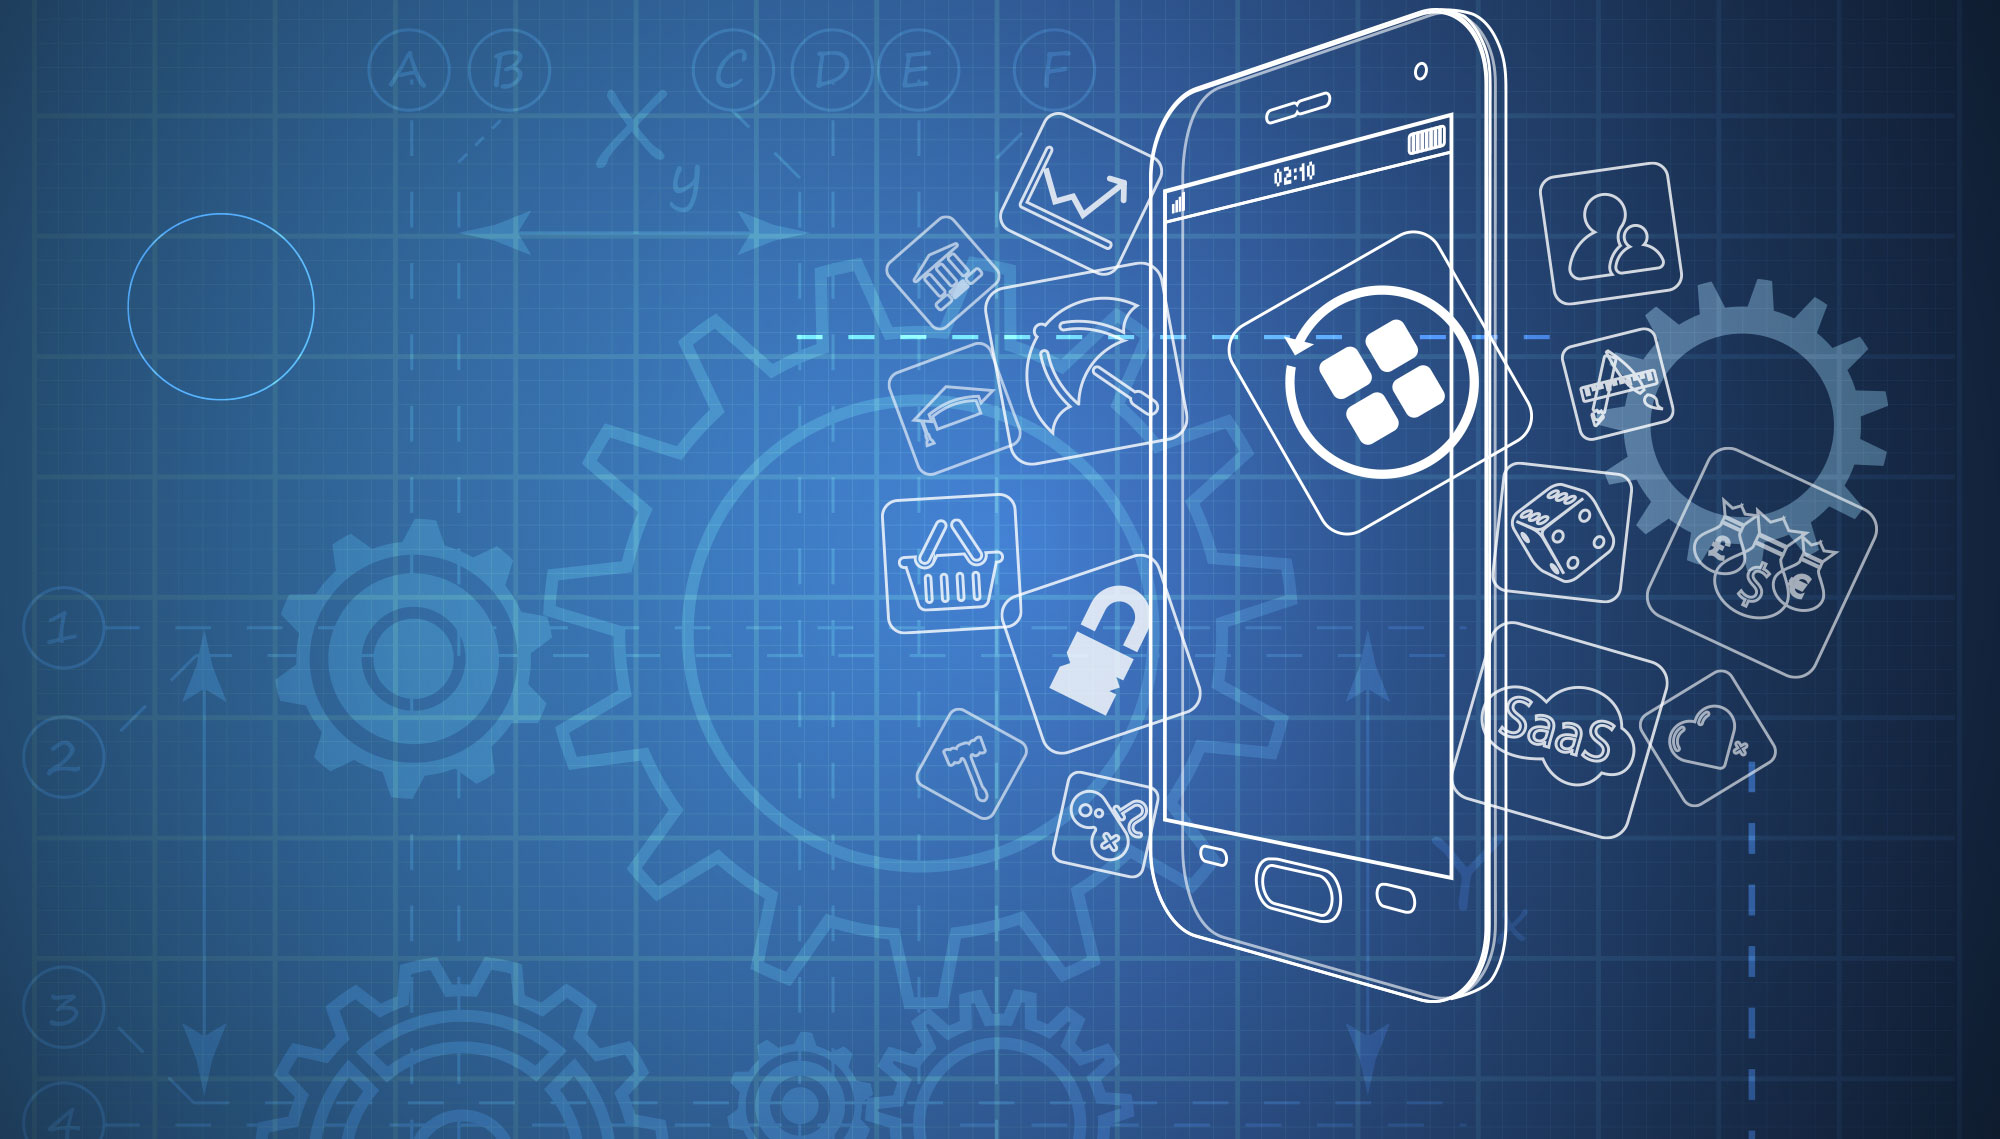 How To Build A Mobile App With No Tech Background Or Coding Skills